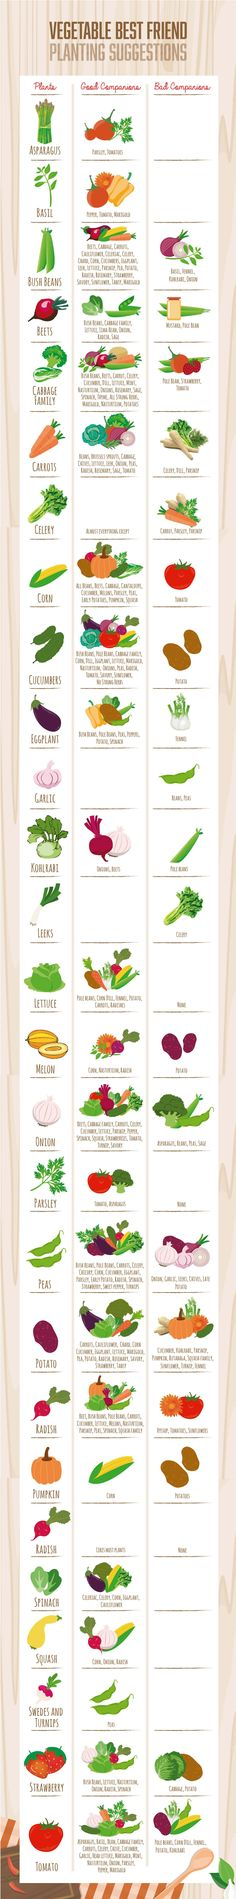 Companion Planting - Vegetable Best Friend Suggestions Infographic